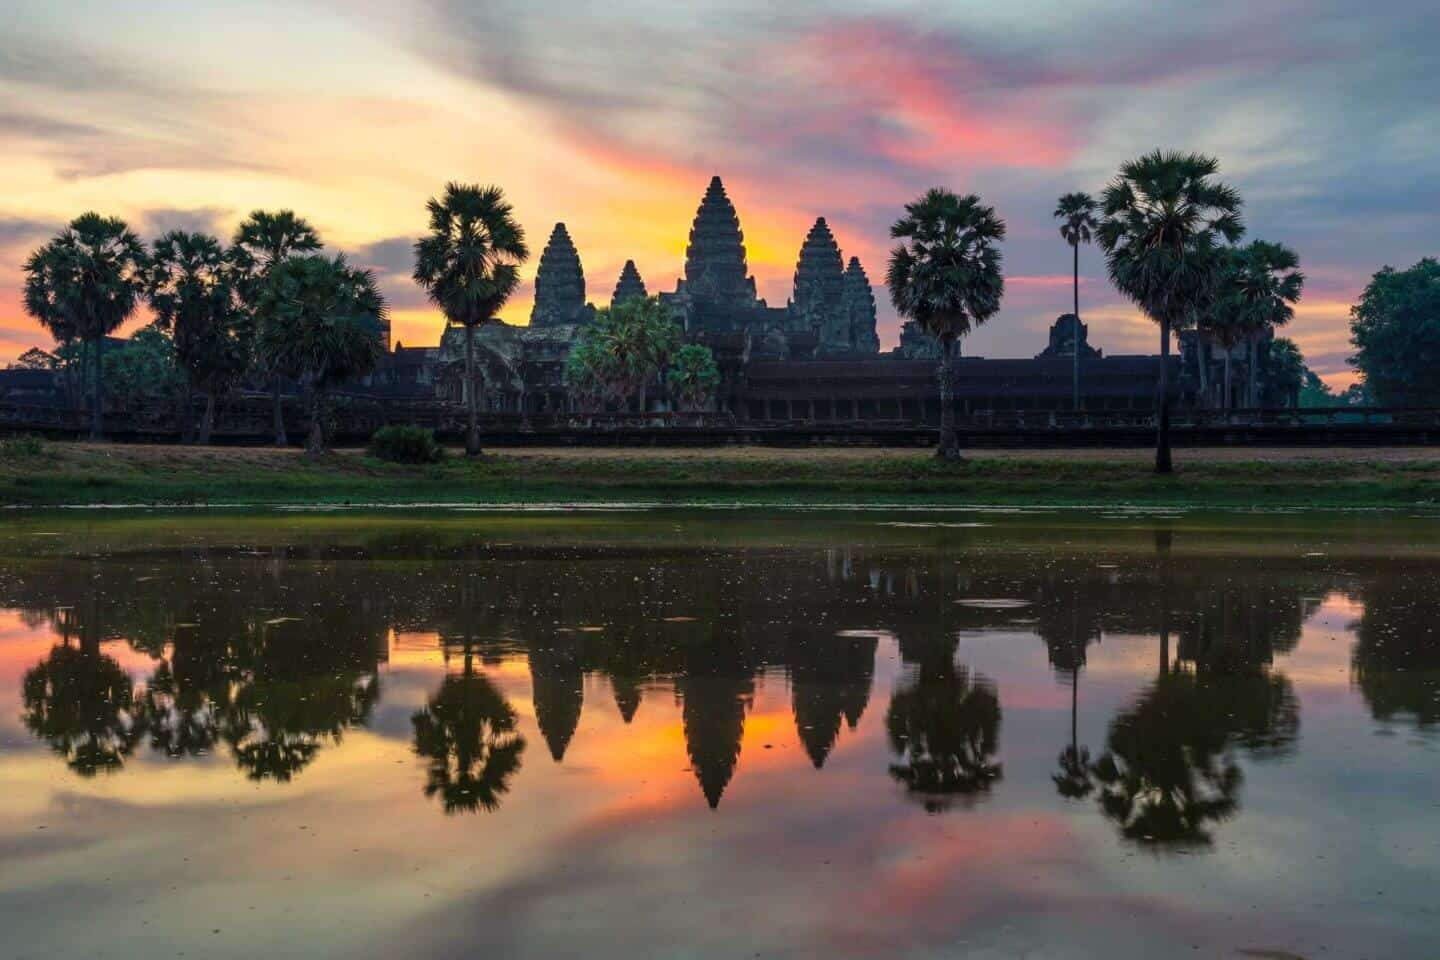 A photo of Angkor Wat Temple, Cambodia at sunrise reflected in water.